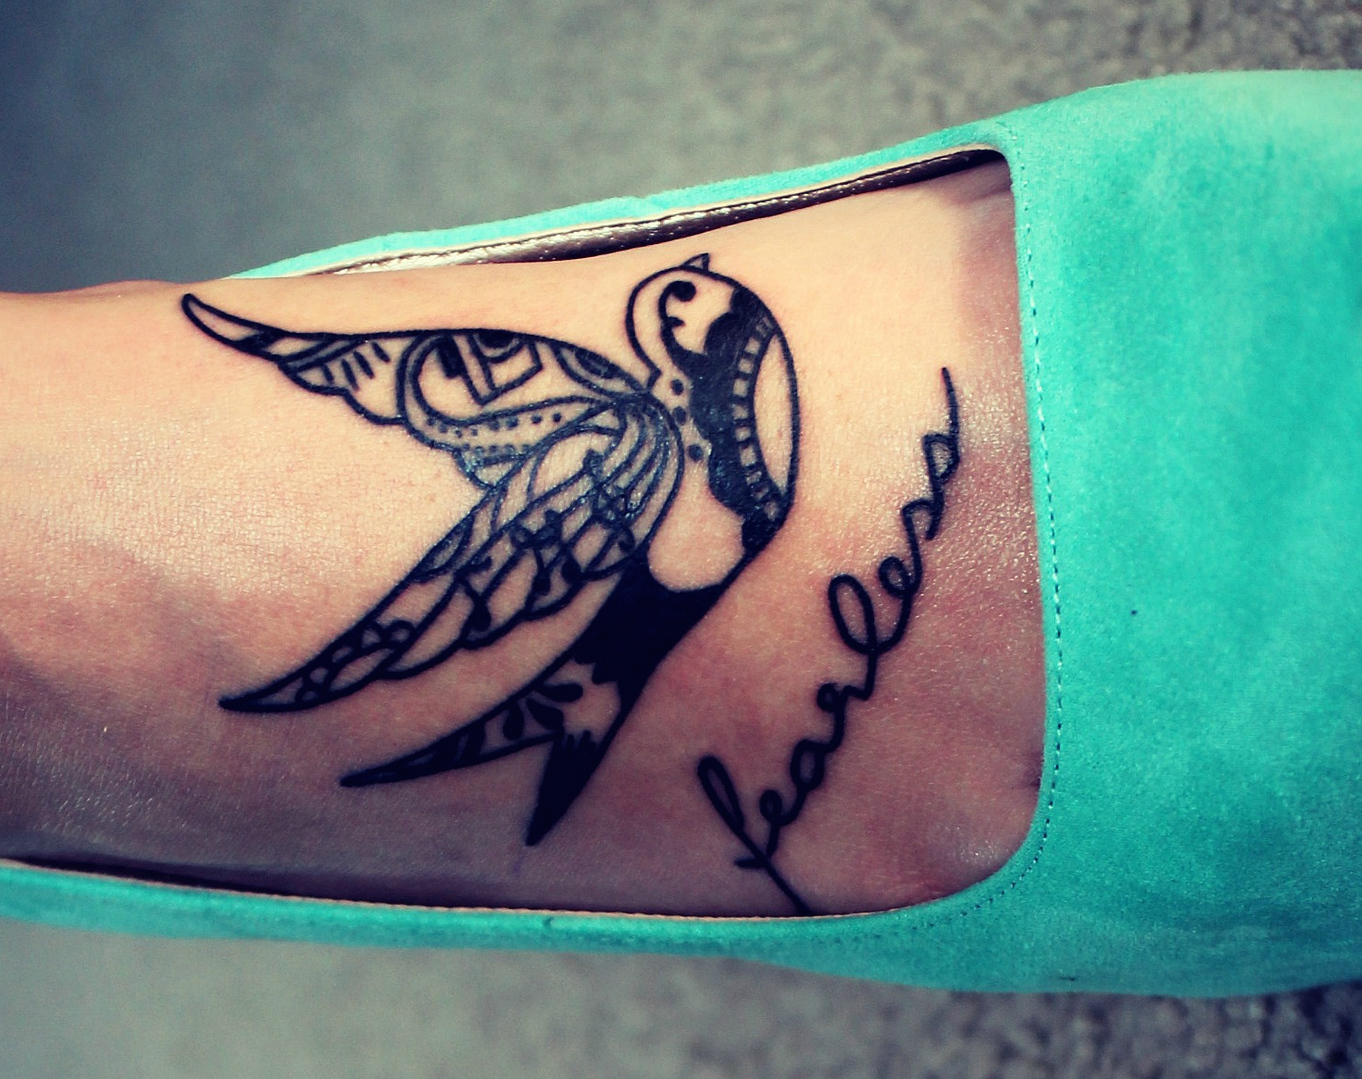 17 Powerful One Word Tattoos That Prove A Single Word Can Make A ...